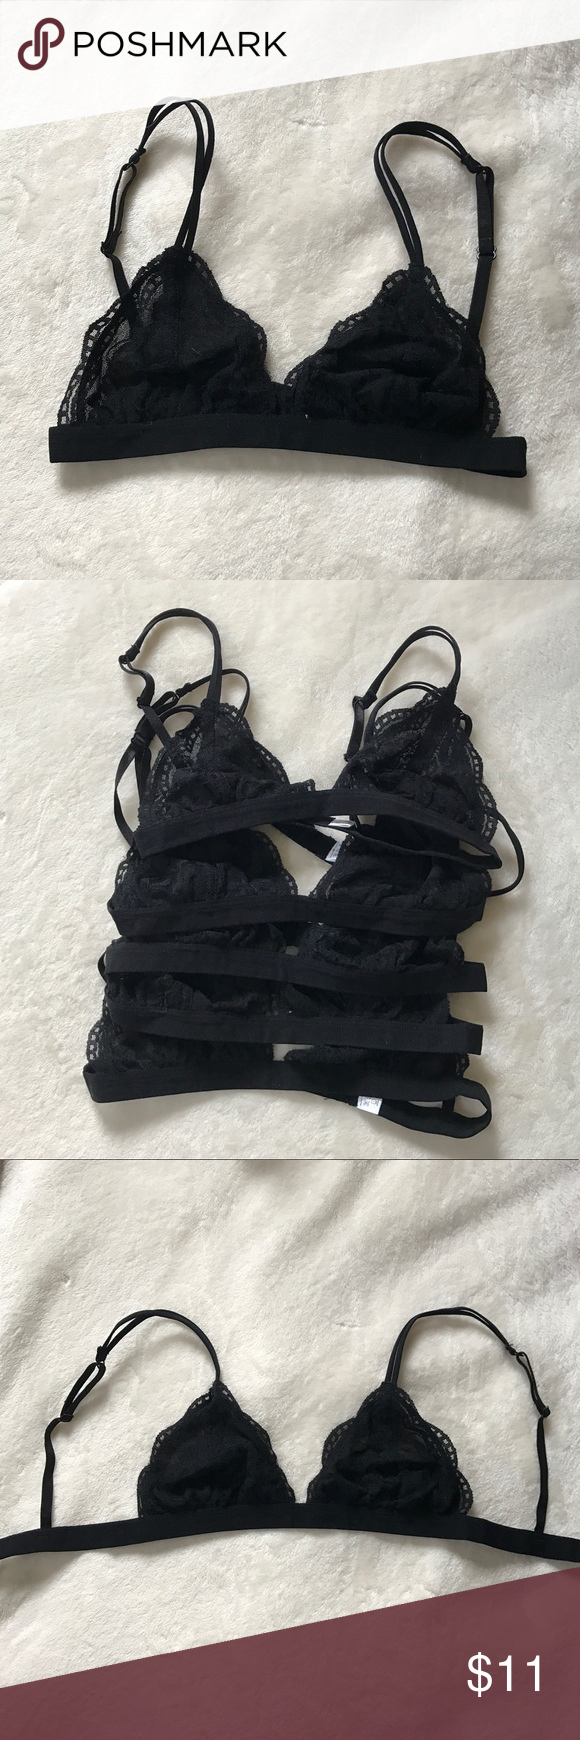 6cfd66f7f0 Brandy Melville Lourdes Bralette 💛 I ordered one bralette from Brandy  Melville and they ended up sending me 9! 😍🙏🏼 I m selling the rest of the  8 for ...